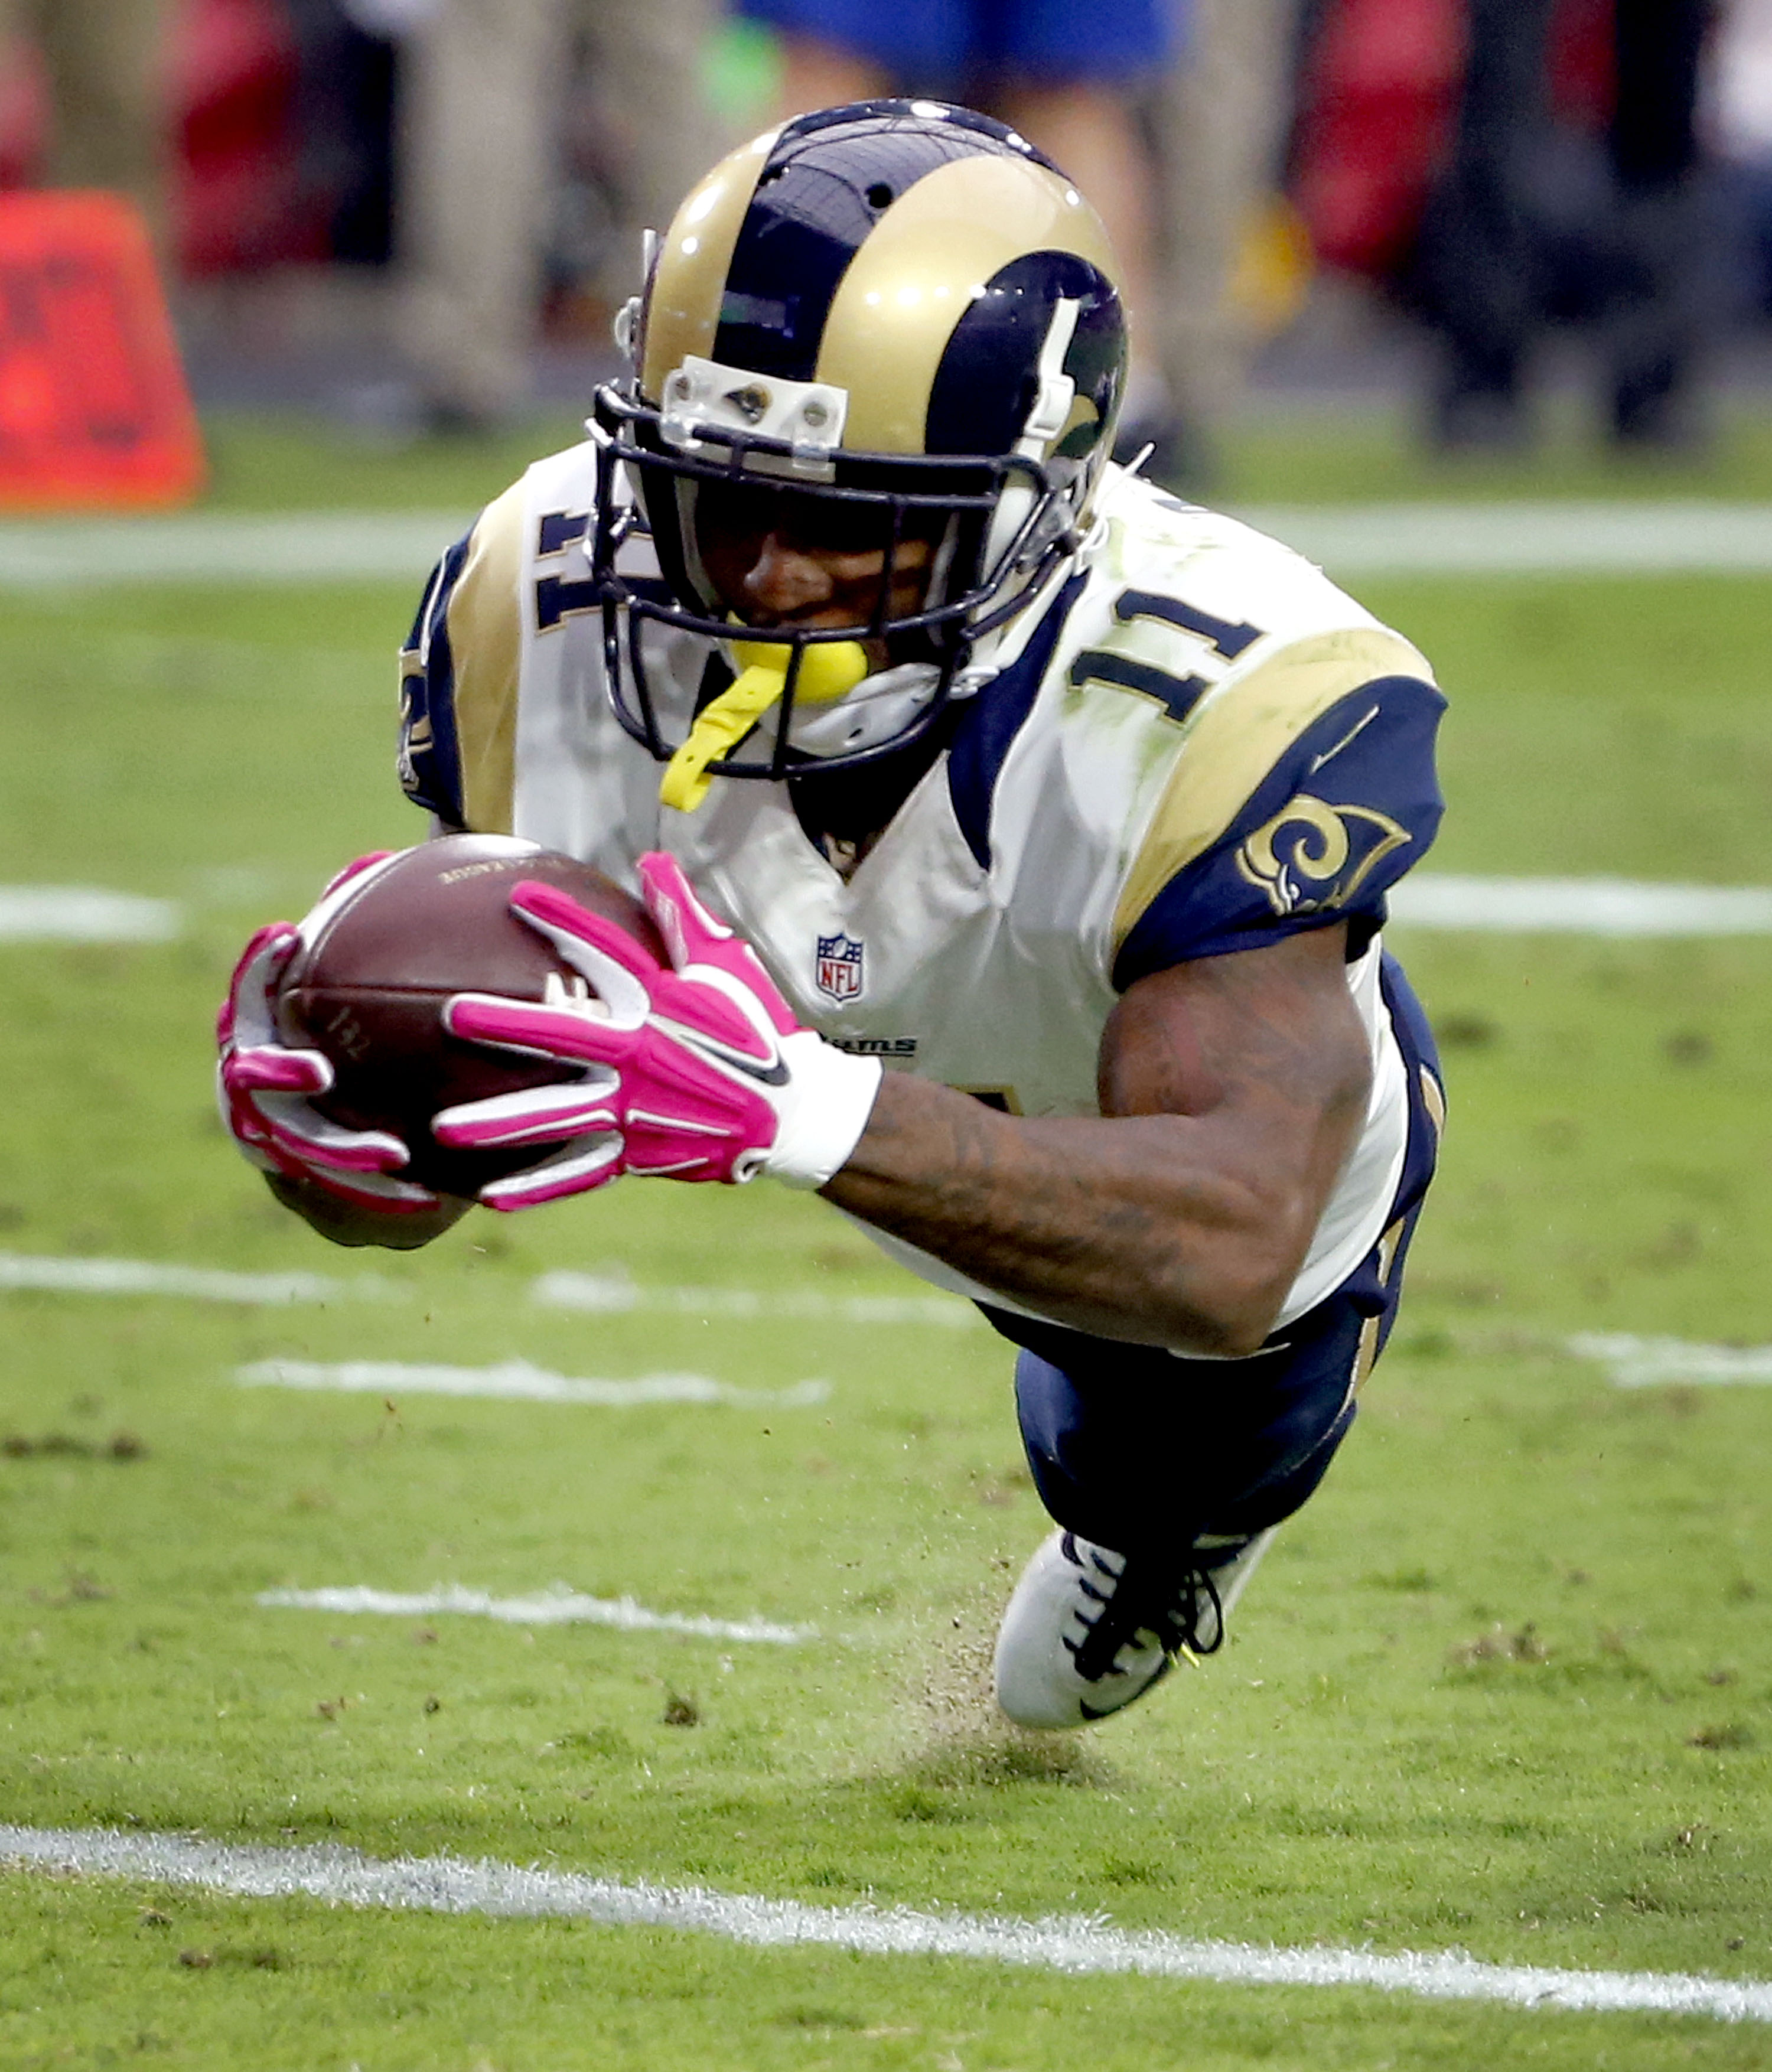 St. Louis Rams wide receiver Tavon Austin (11) lunges for the end zone for a touchdown against the Arizona Cardinals during the second half of an NFL football game, Sunday, Oct. 4, 2015, in Glendale, Ariz. (AP Photo/Ross D. Franklin)